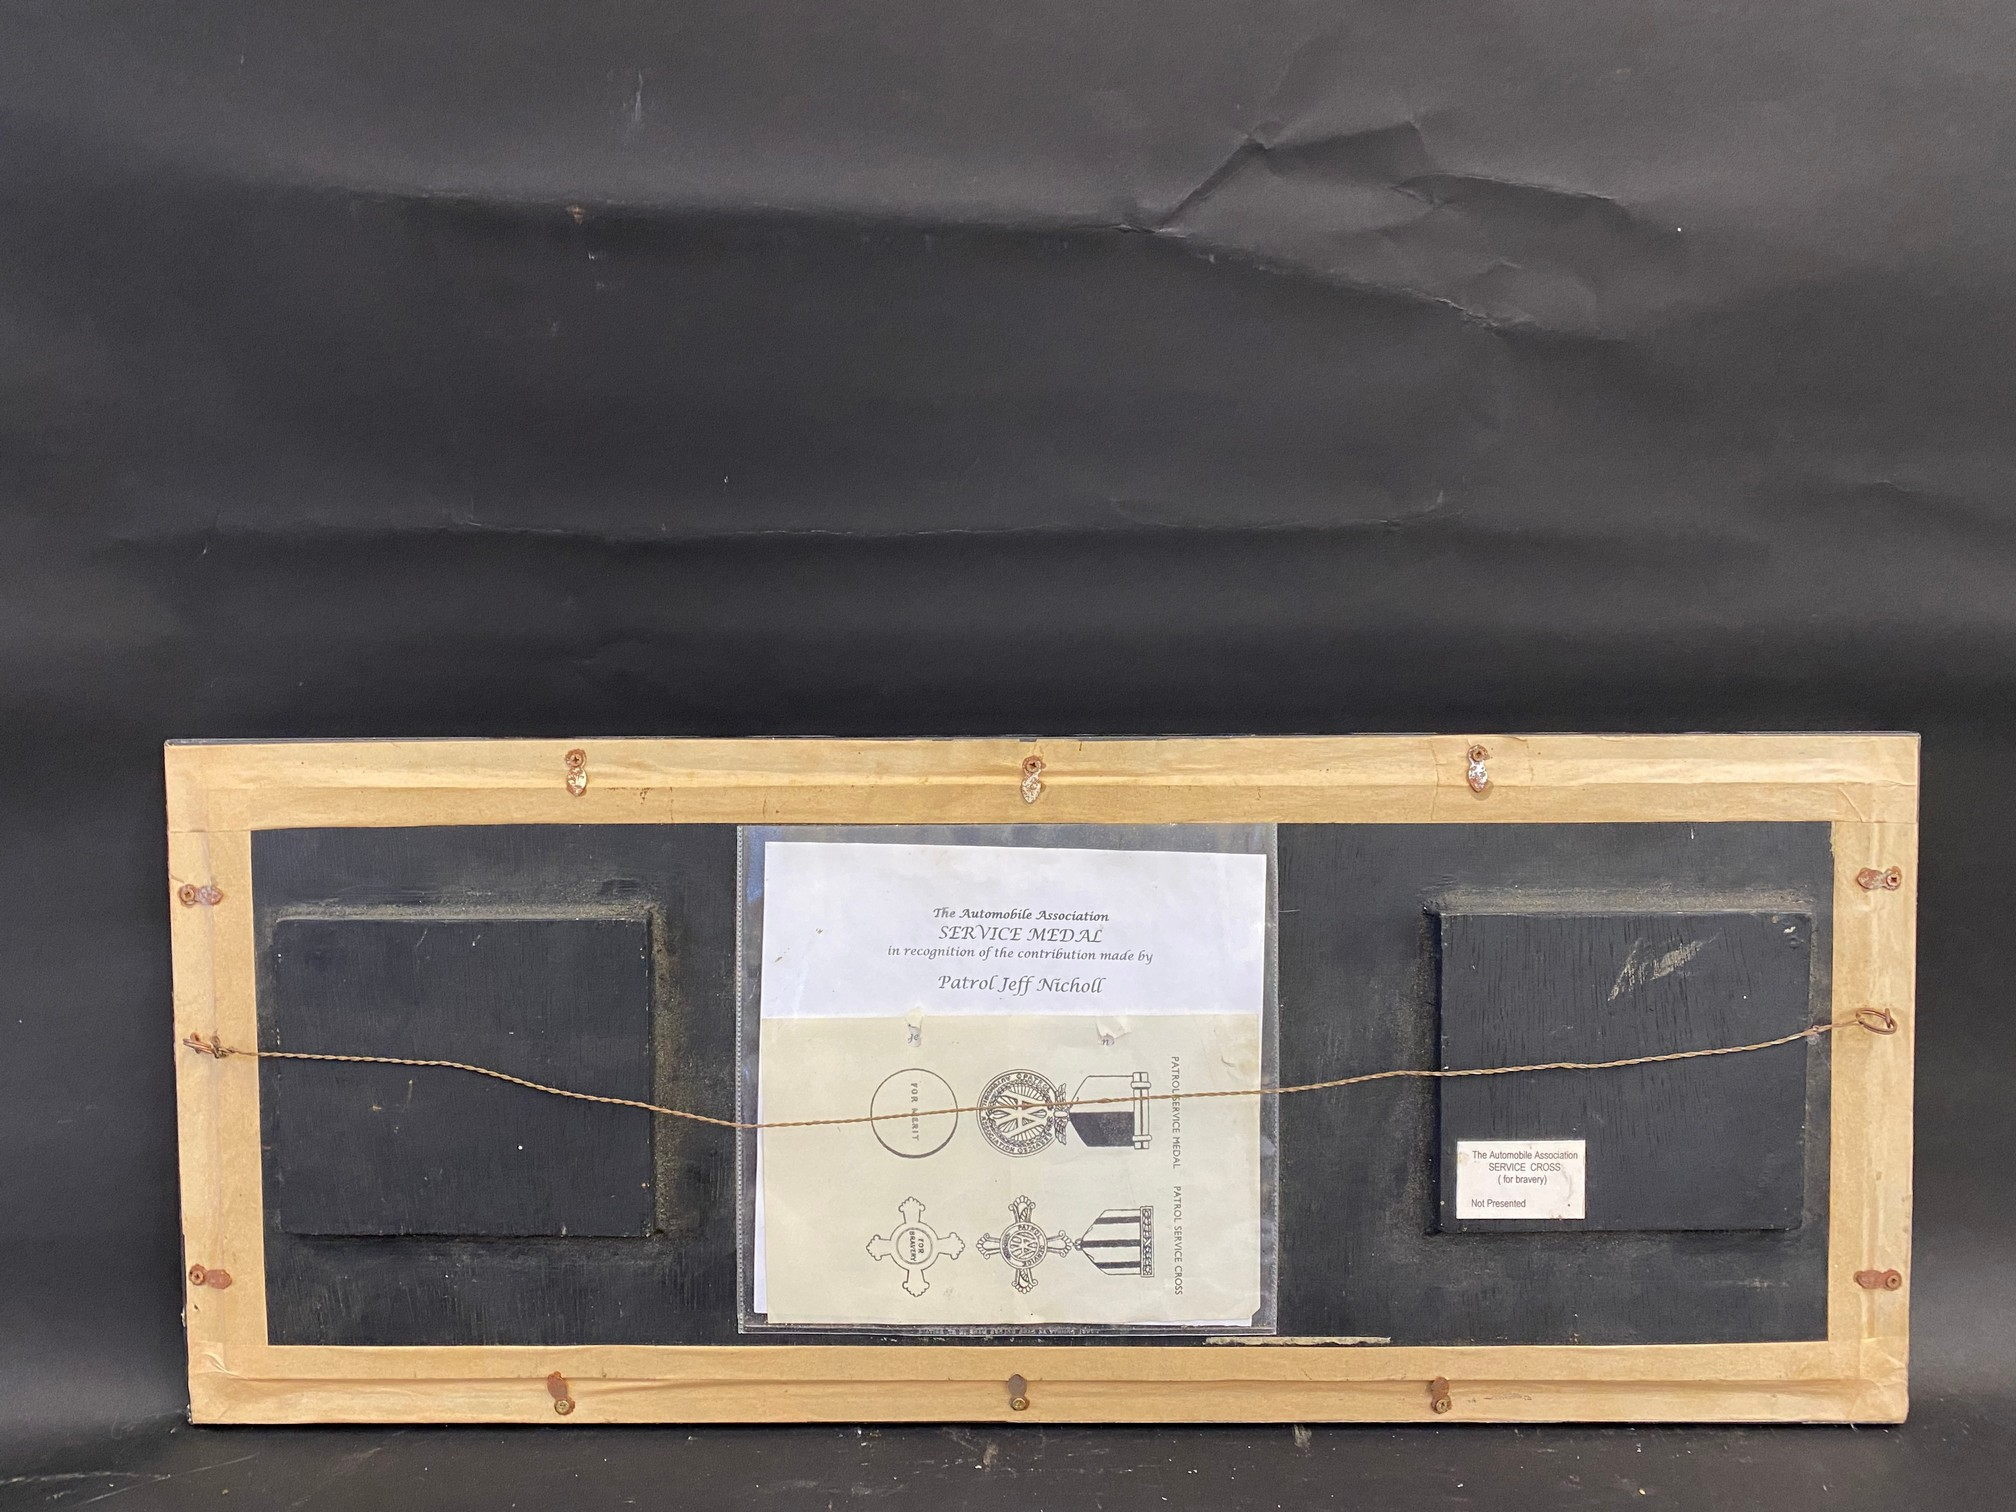 An AA patrol service medal and a patrol service cross, both in boxes of issue, awarded to Patrol - Image 7 of 8